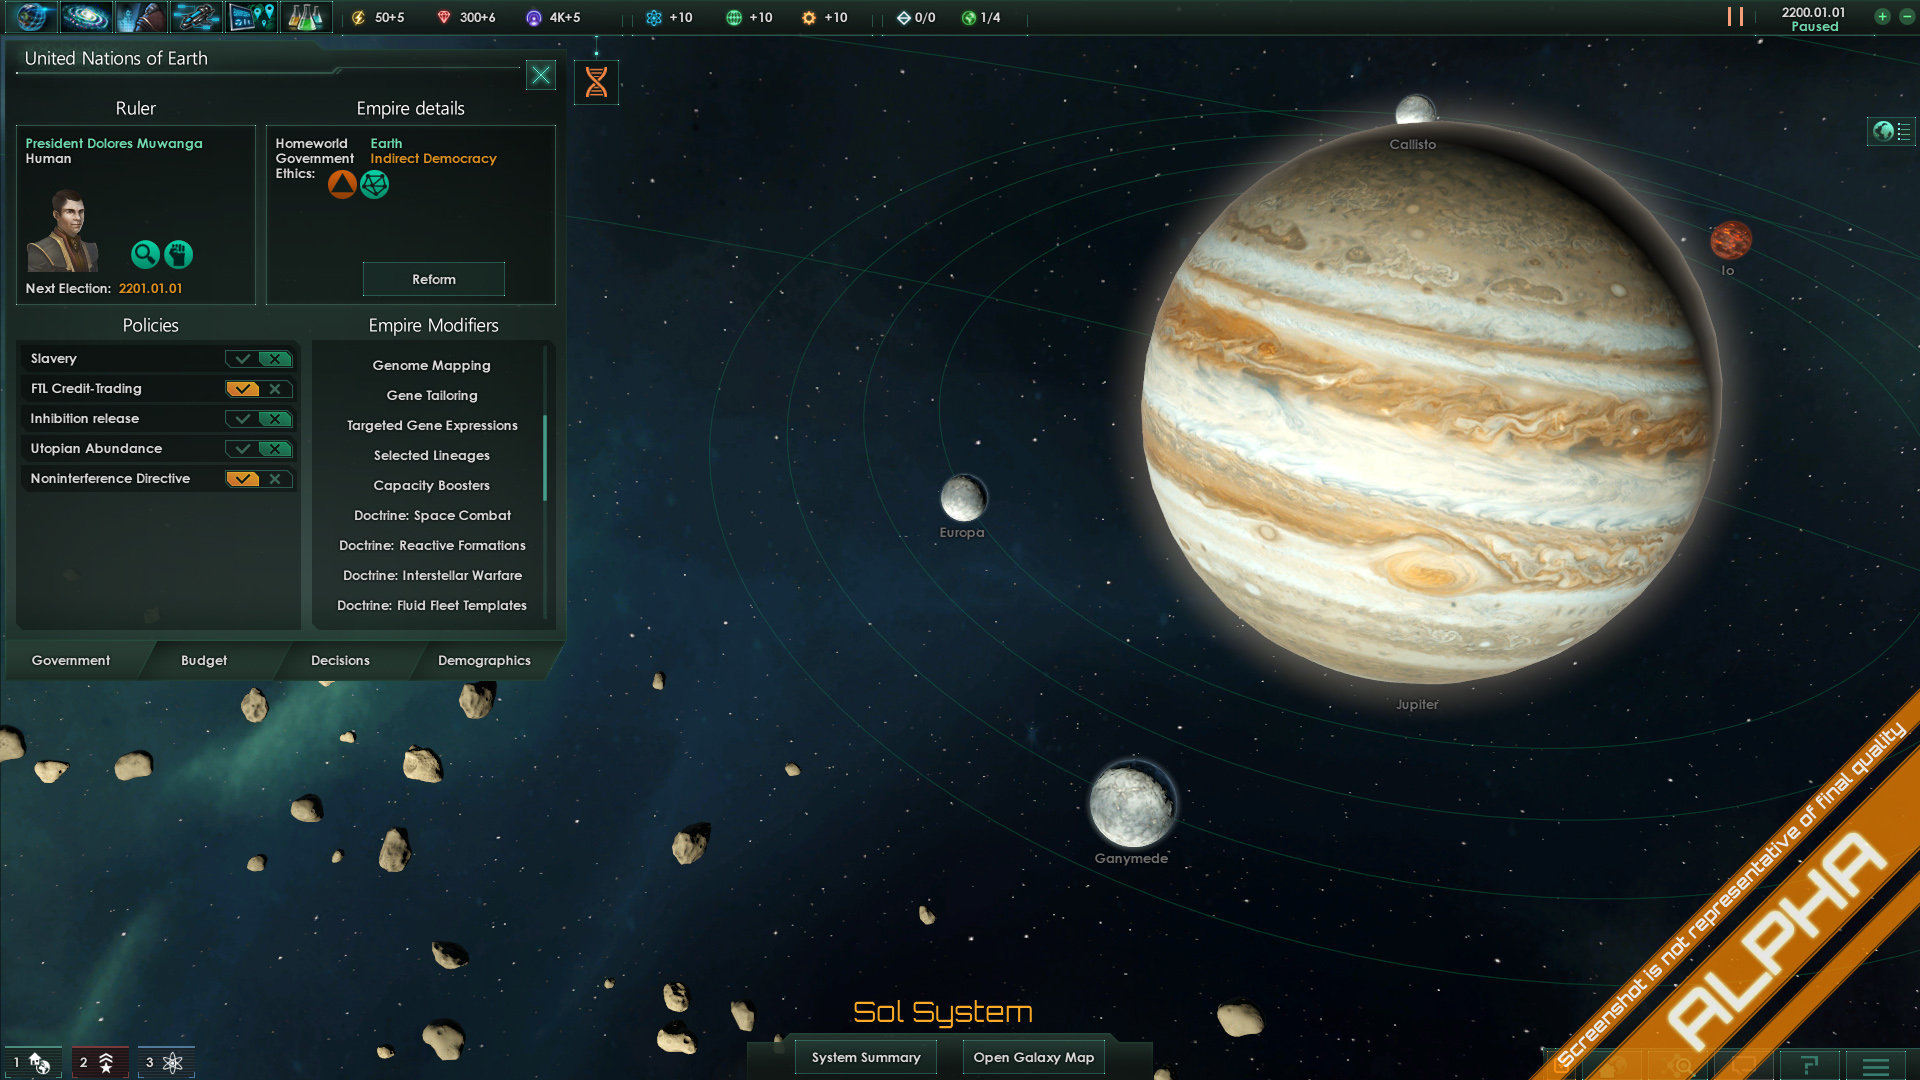 stellaris_dev_diary_06_01_20151026_empire_details.jpg